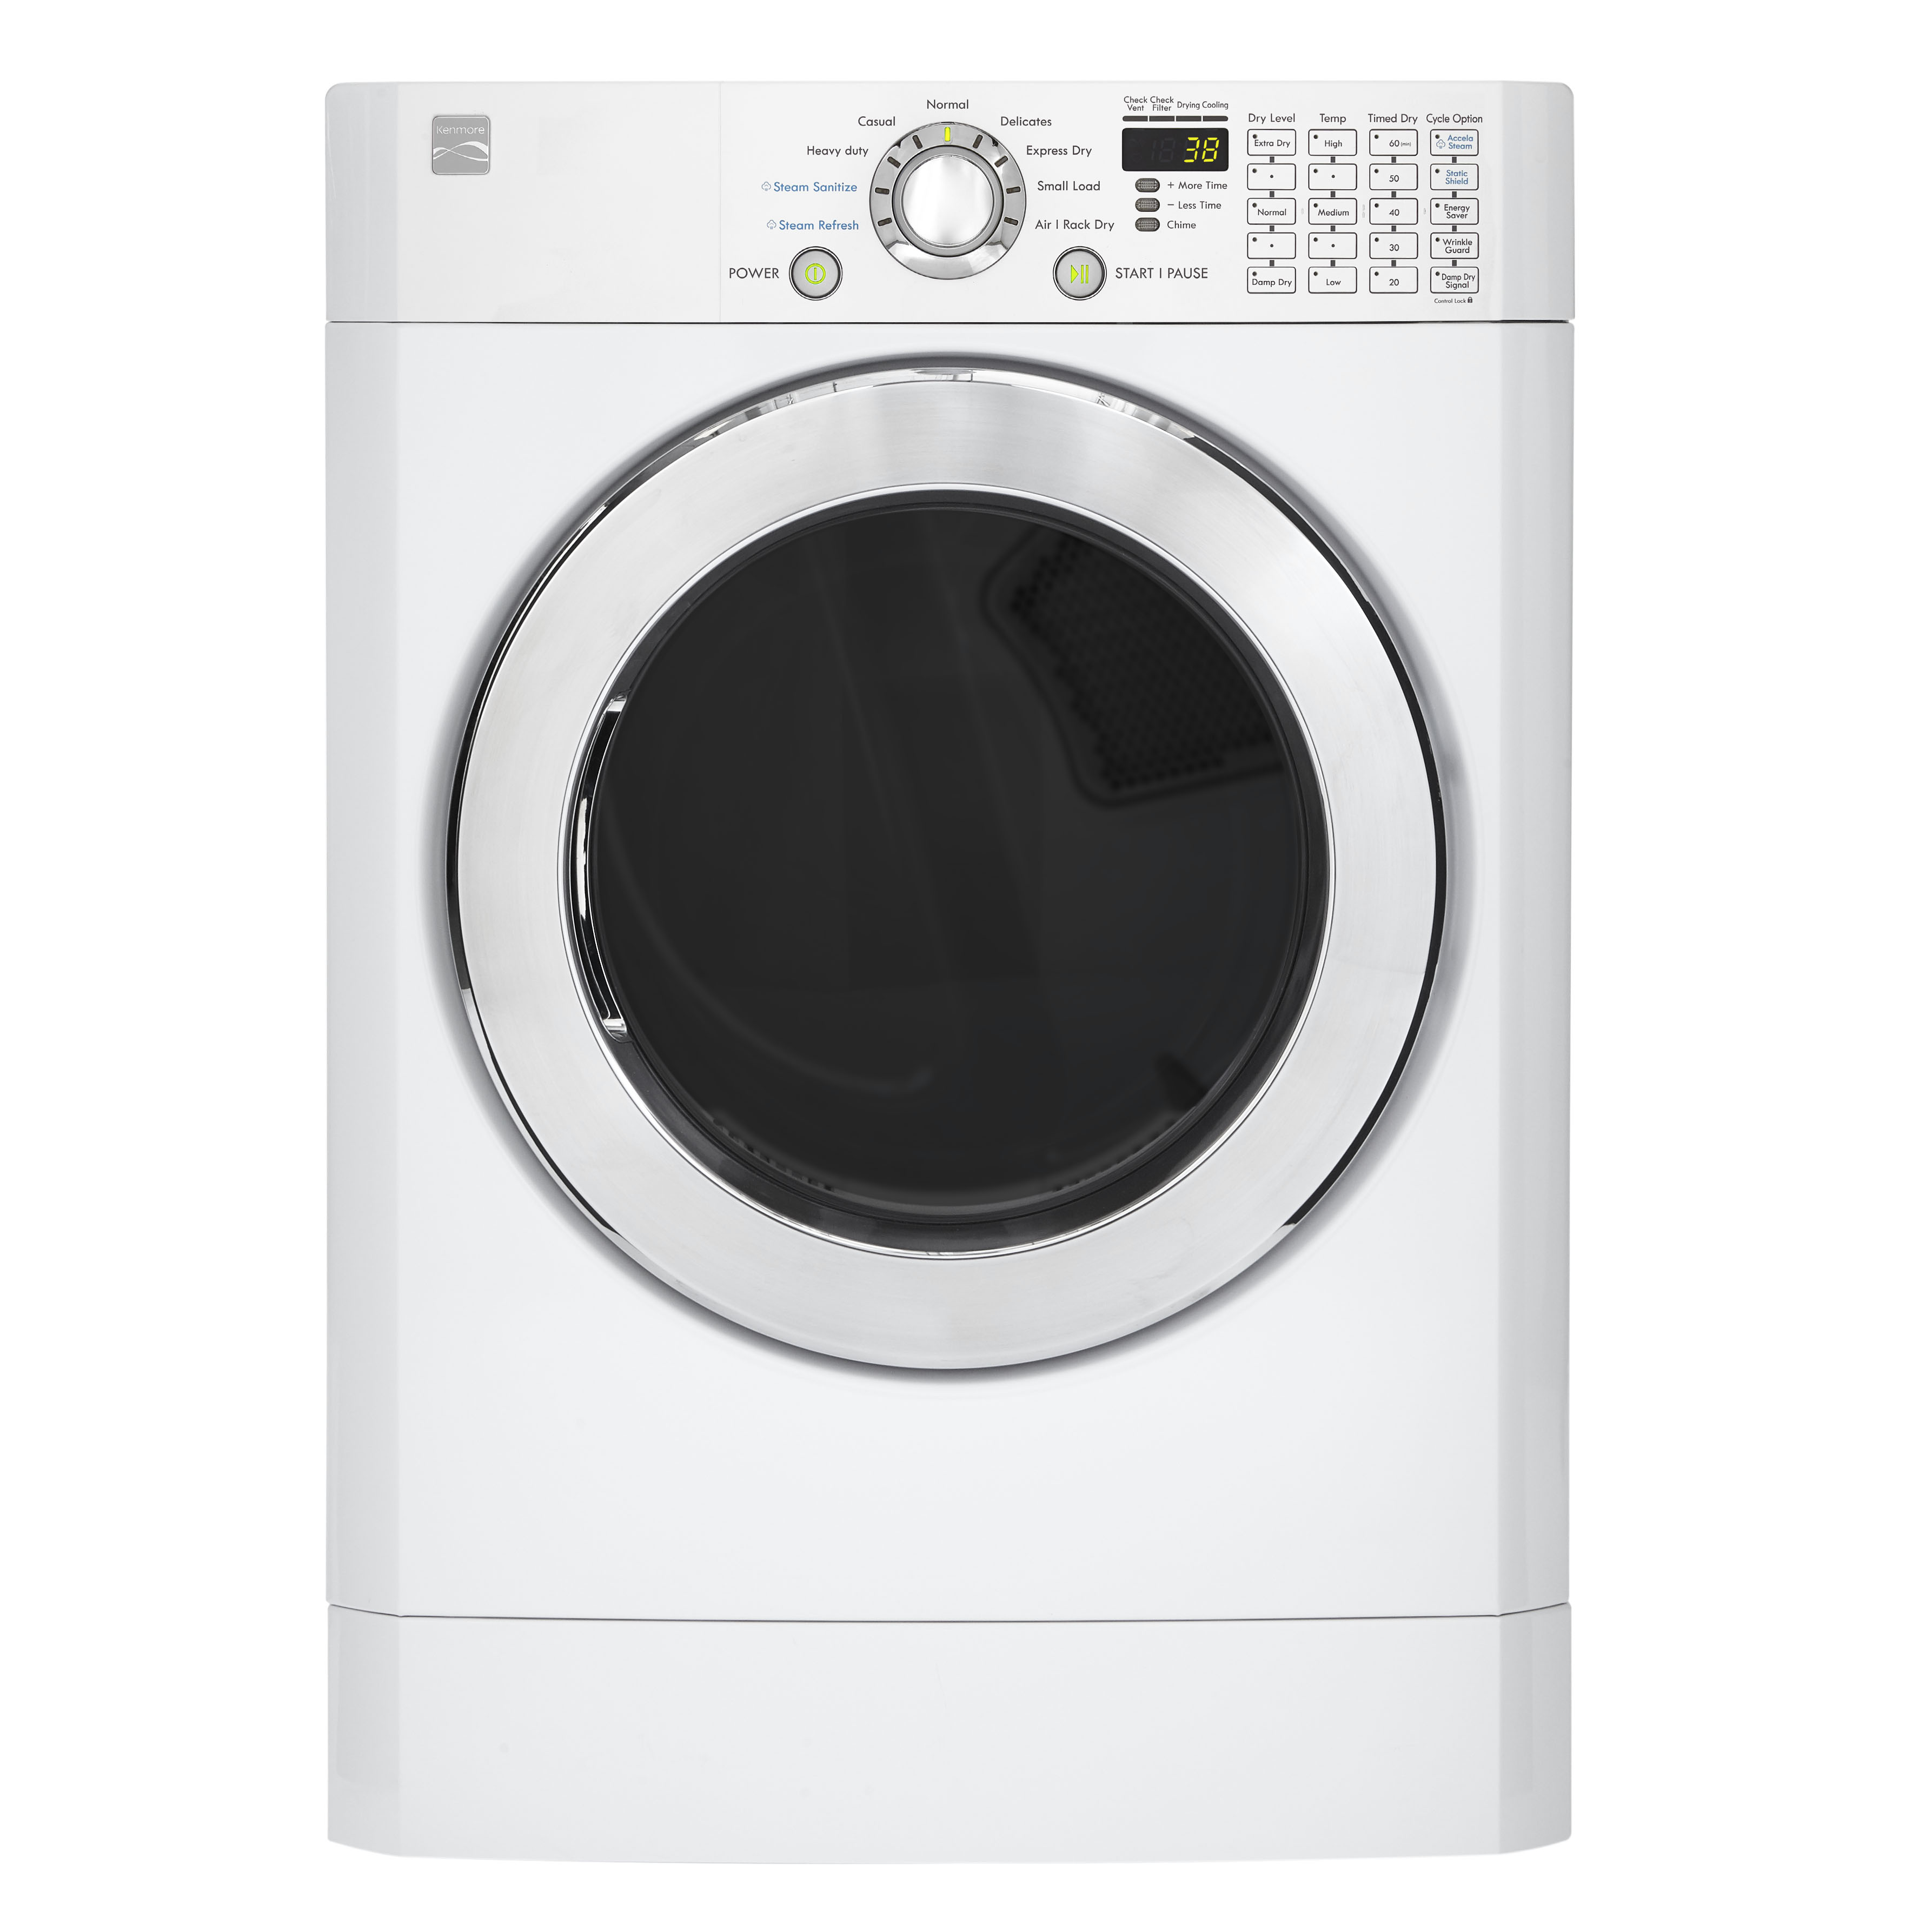 medium resolution of kenmore 91392 7 3 cu ft front load flip control gas dryer white gas dryer i d be happy for any sears gas dryer diagram just to